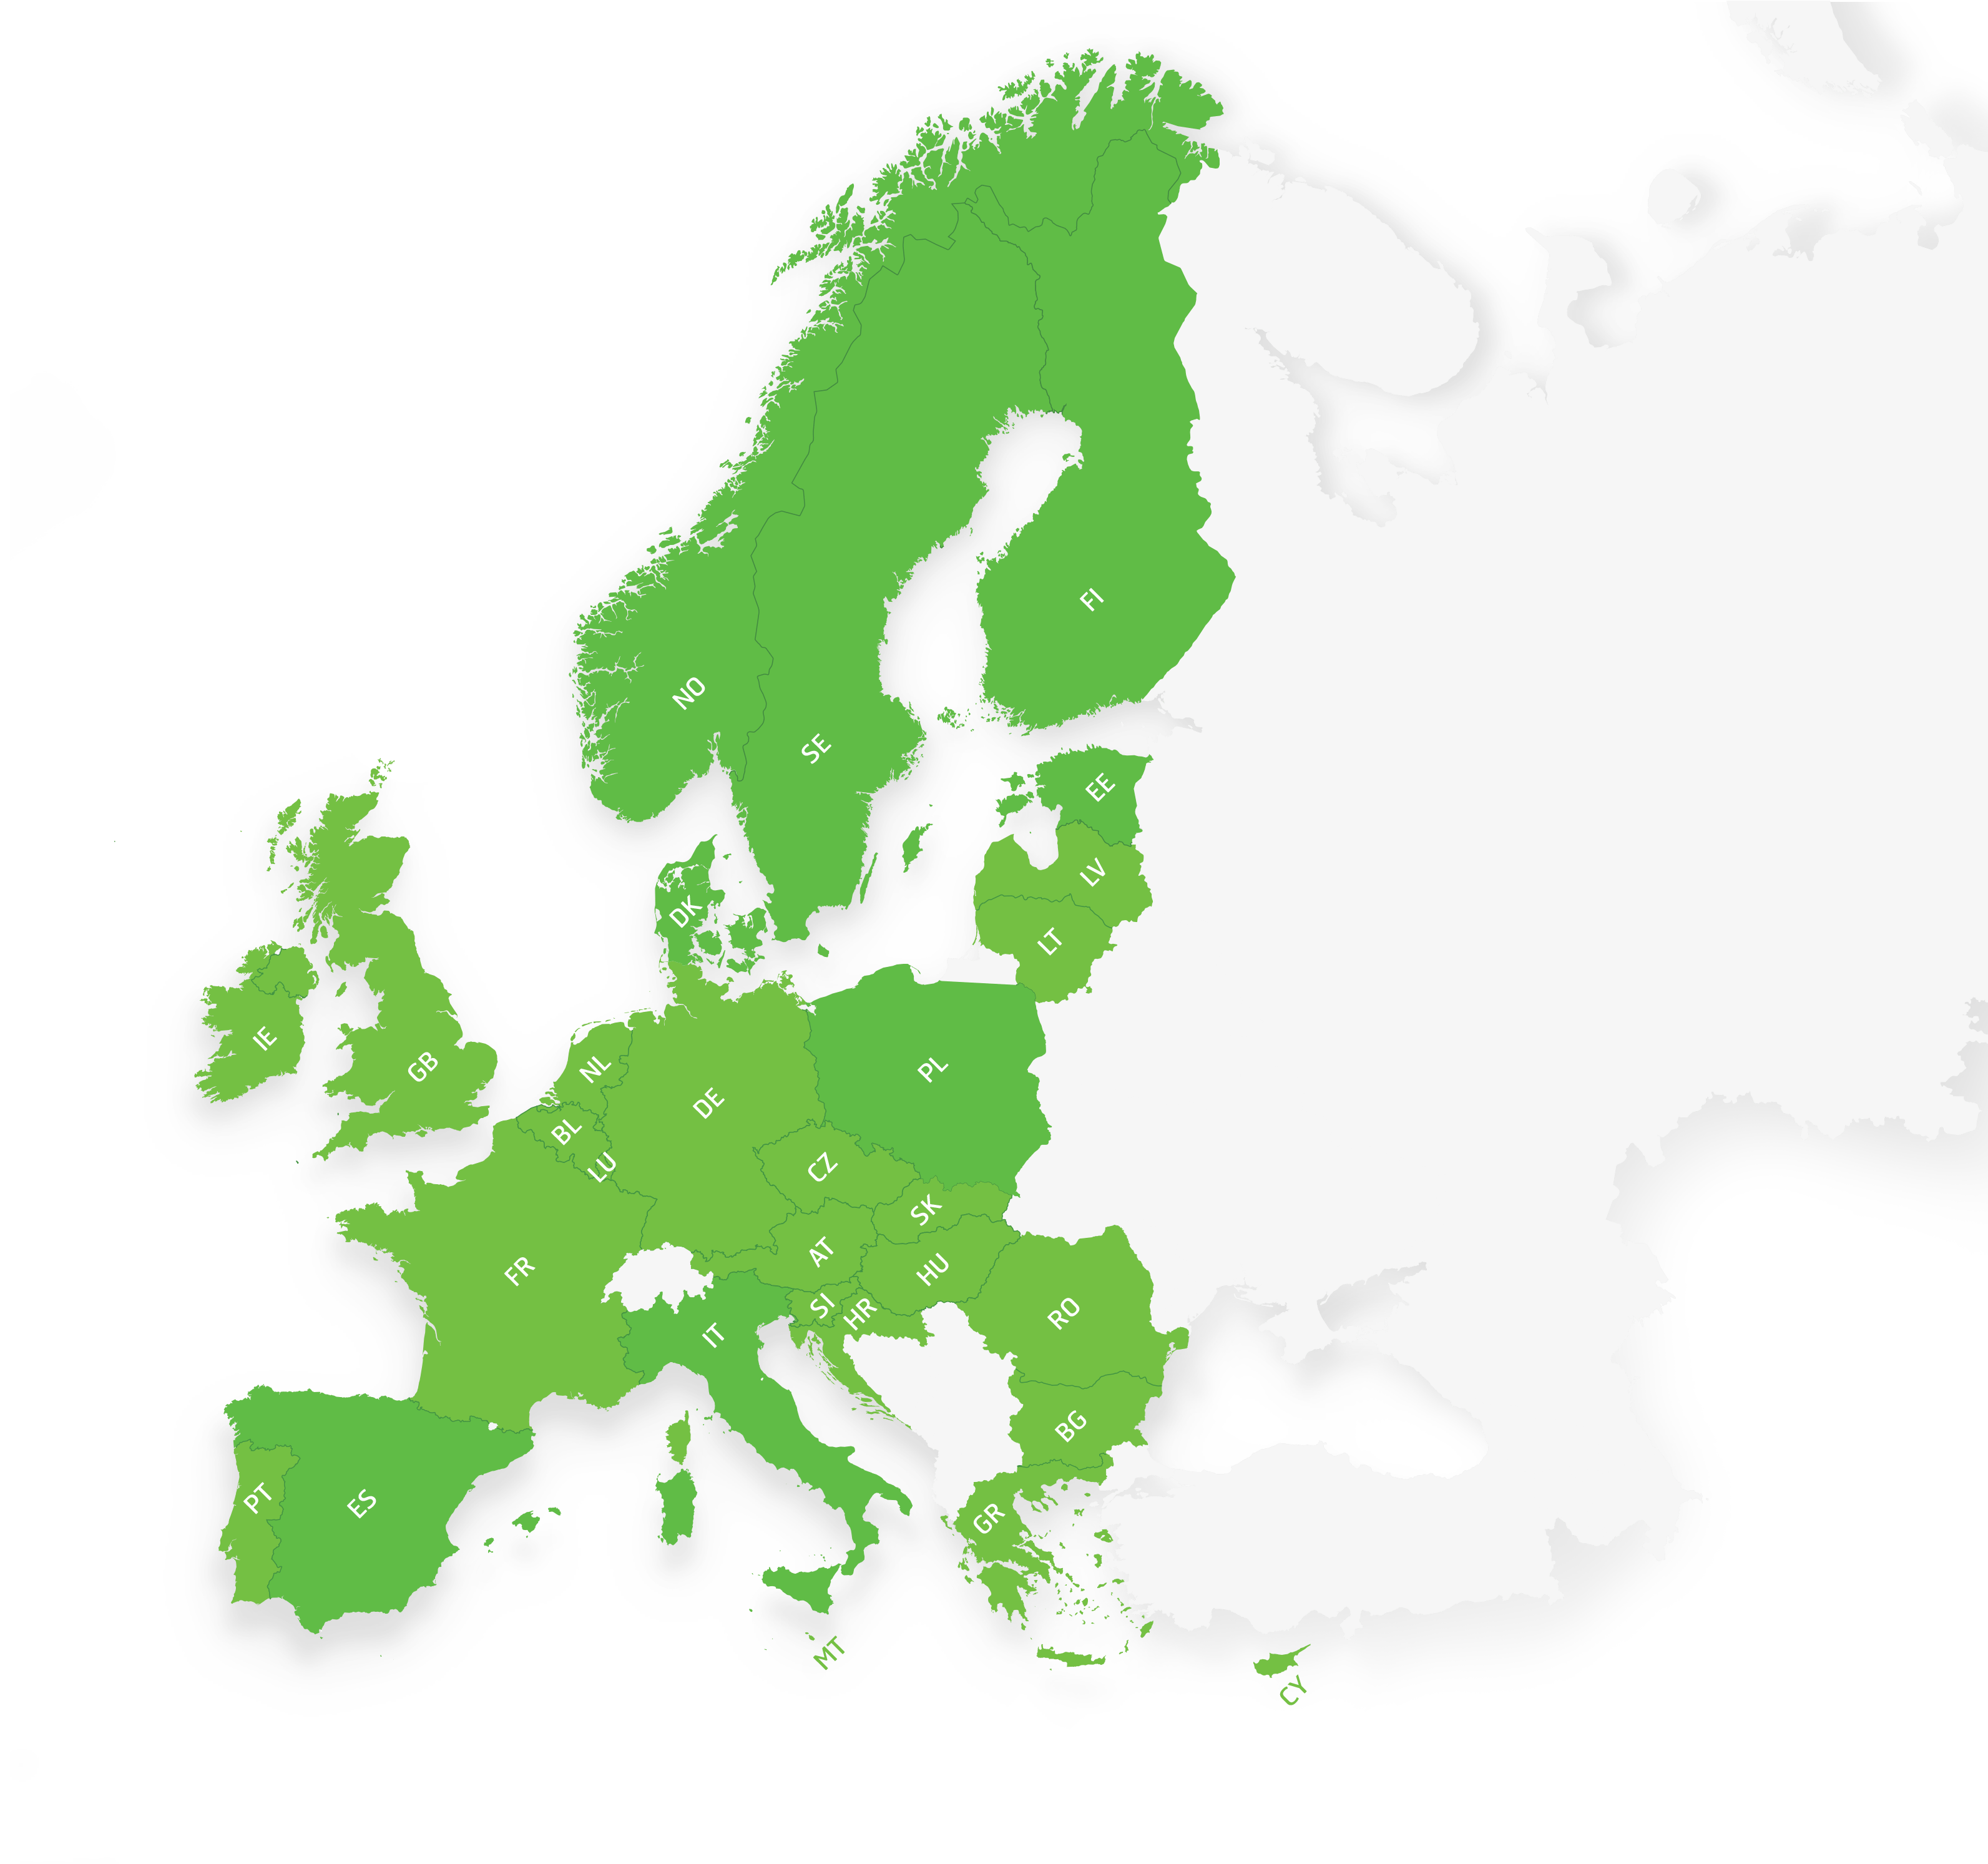 Trustly expands into 21 new European markets